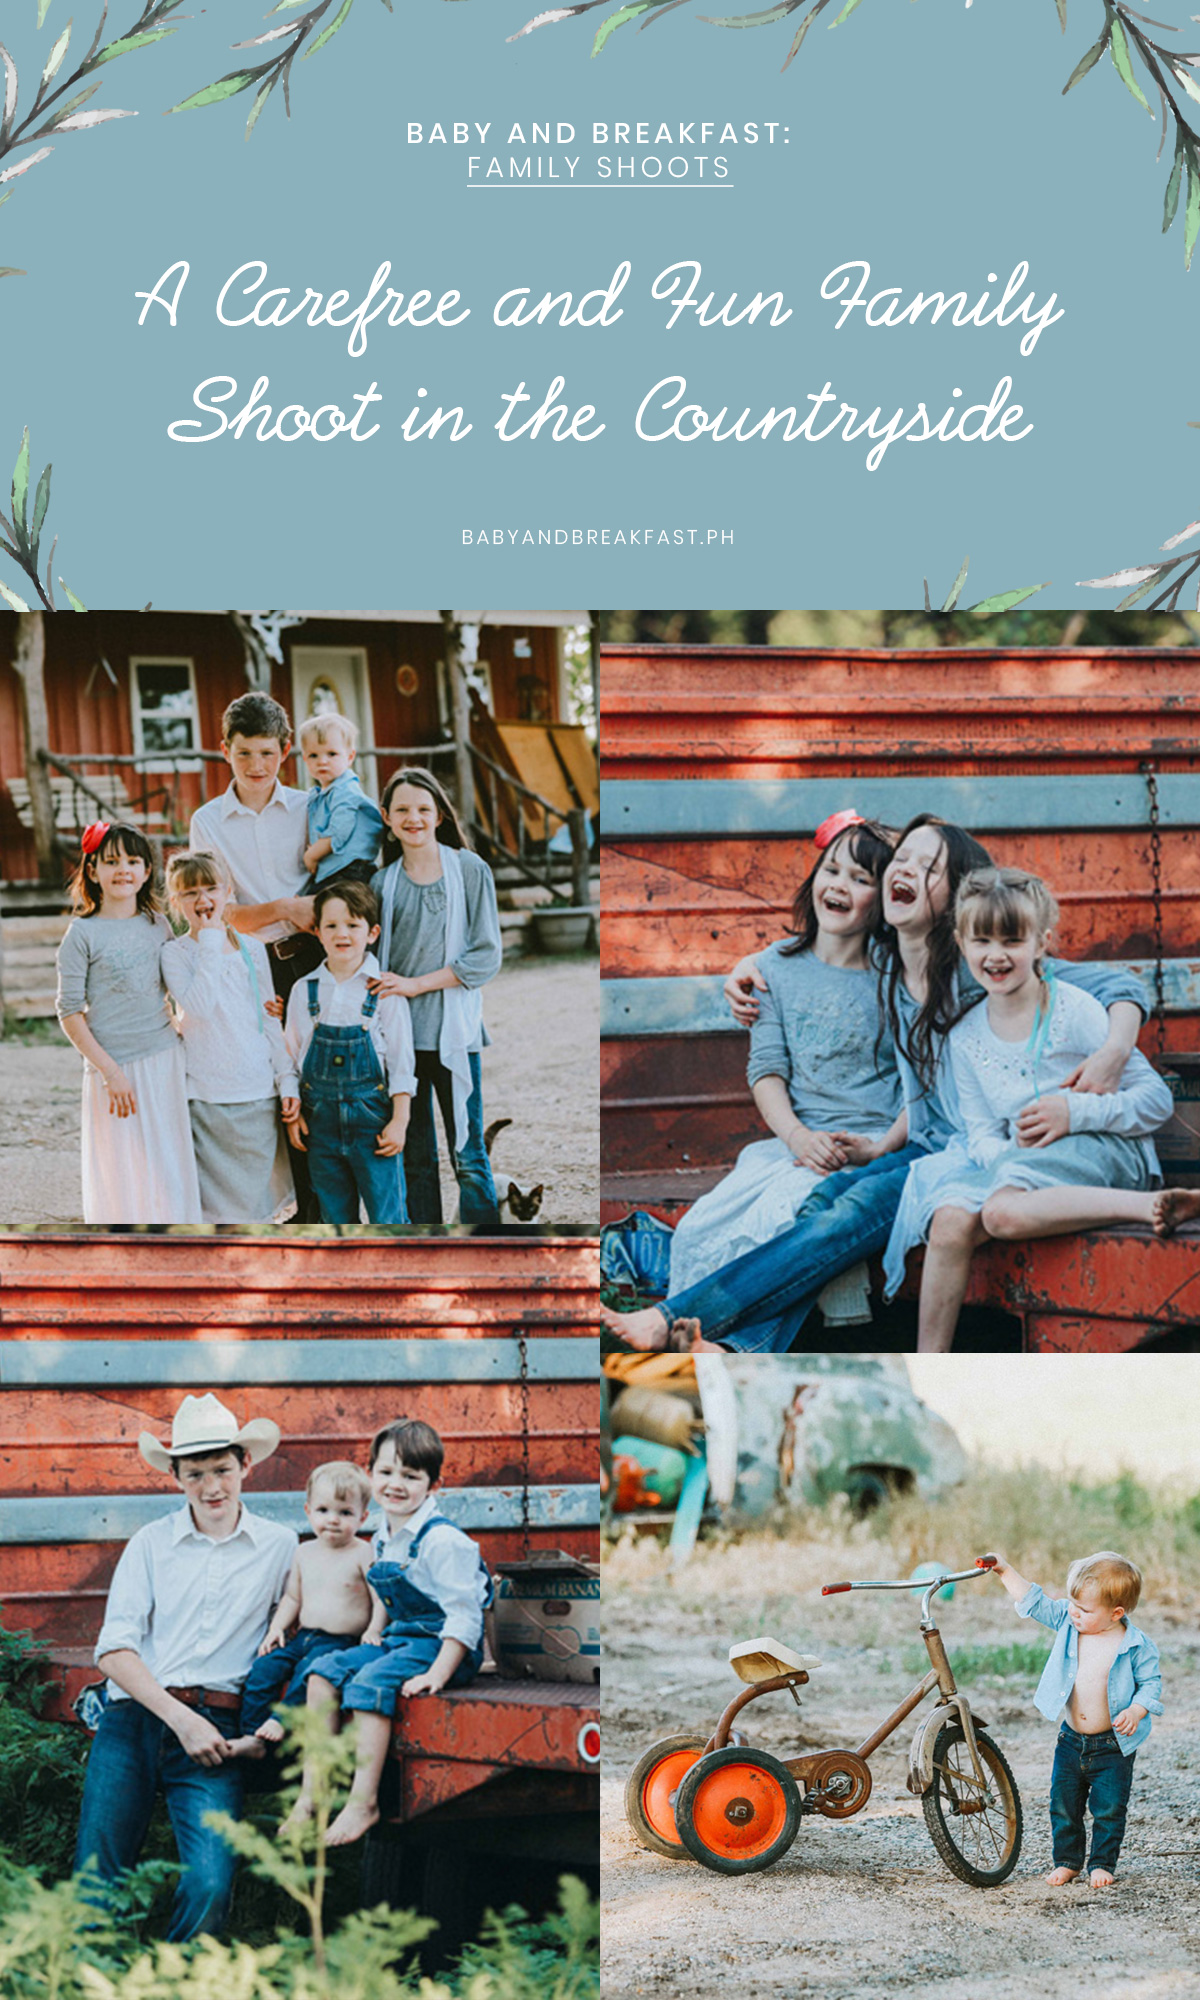 Baby and Breakfast: Family Shoots A Carefree and Fun Family Shoot in the Countryside